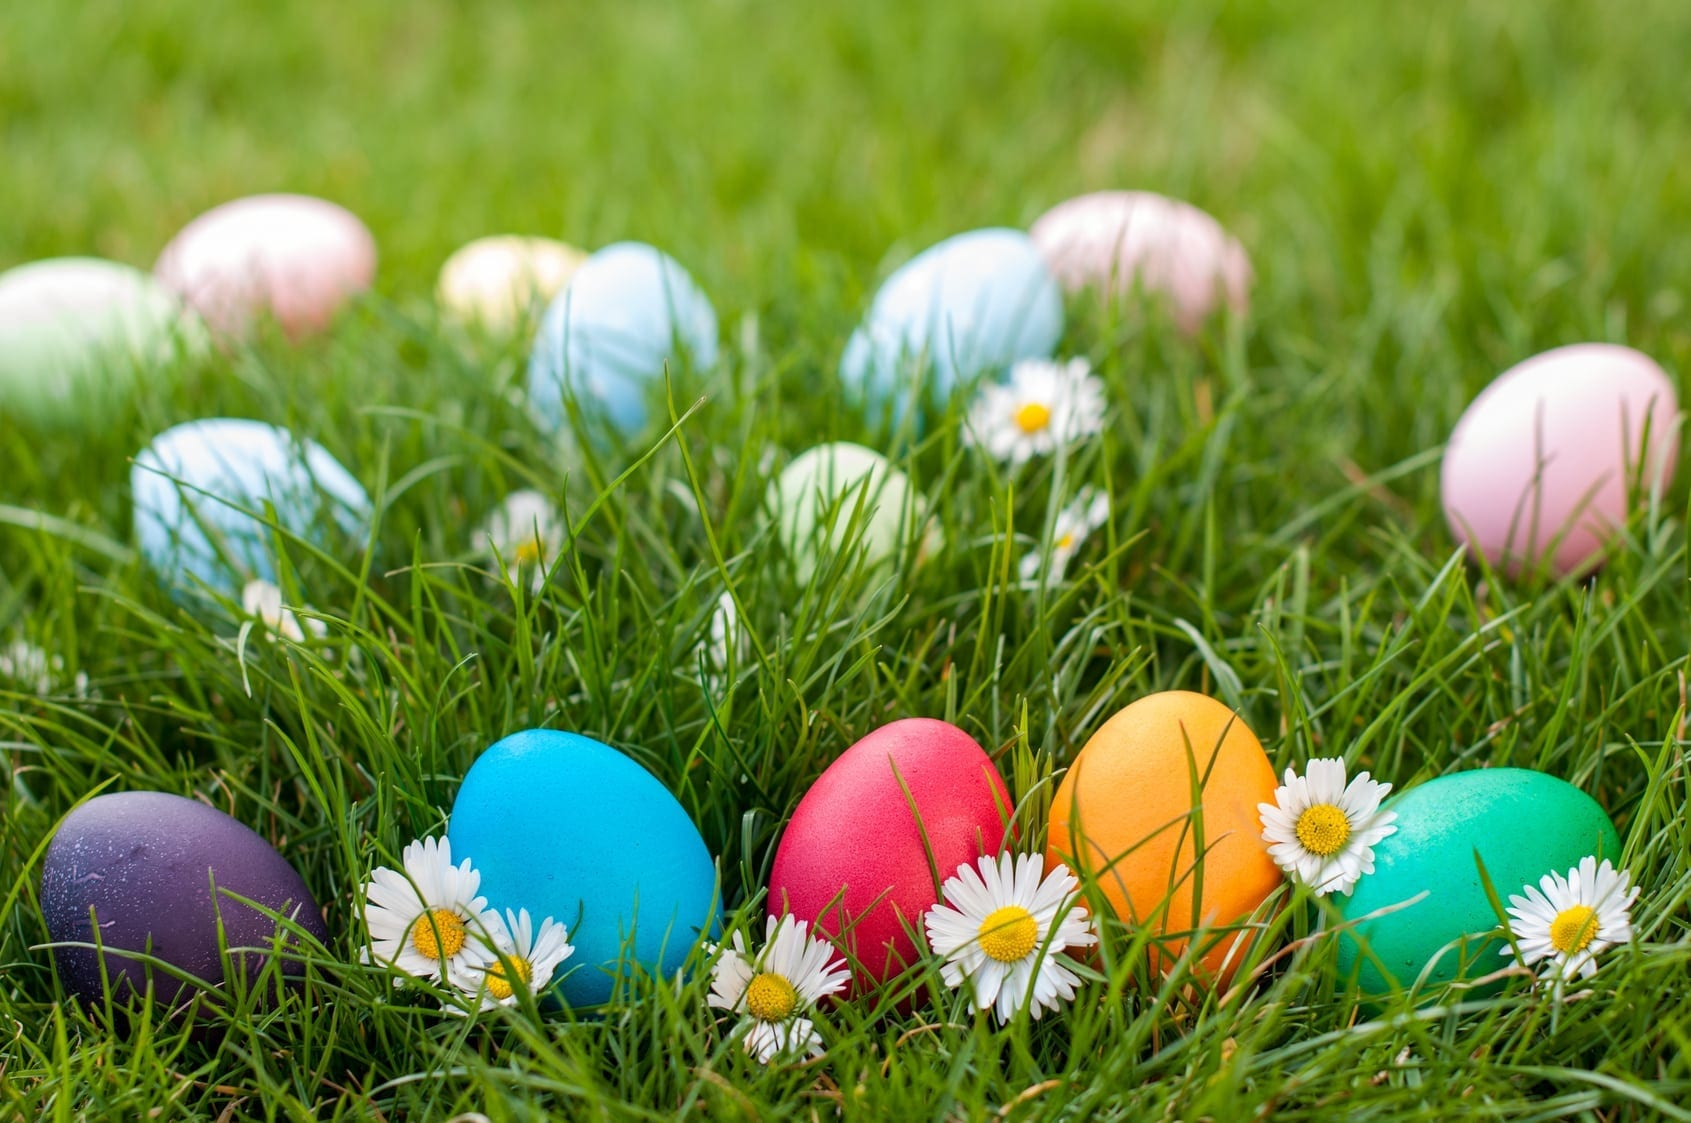 Plenty of egg hunts to attend this weekend